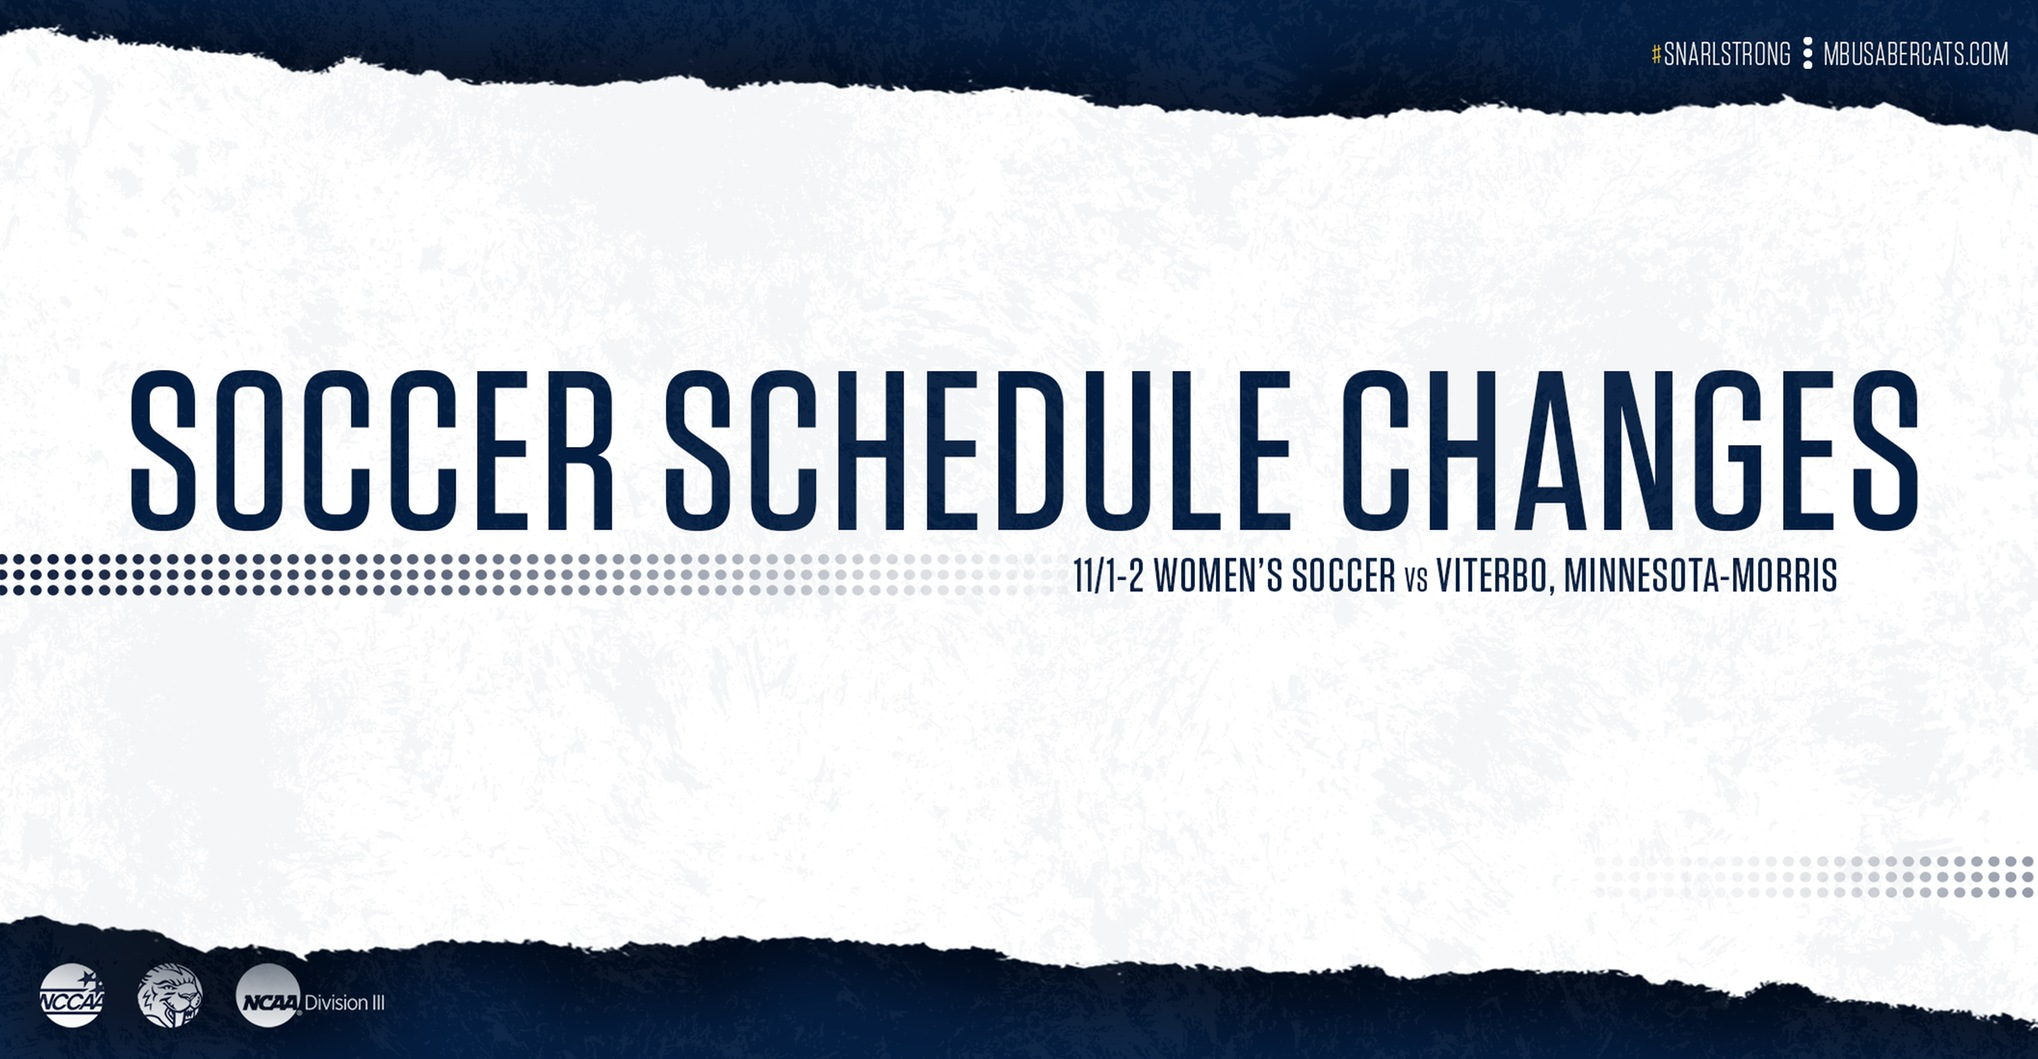 Women's Soccer Schedule Changes 11/1-2